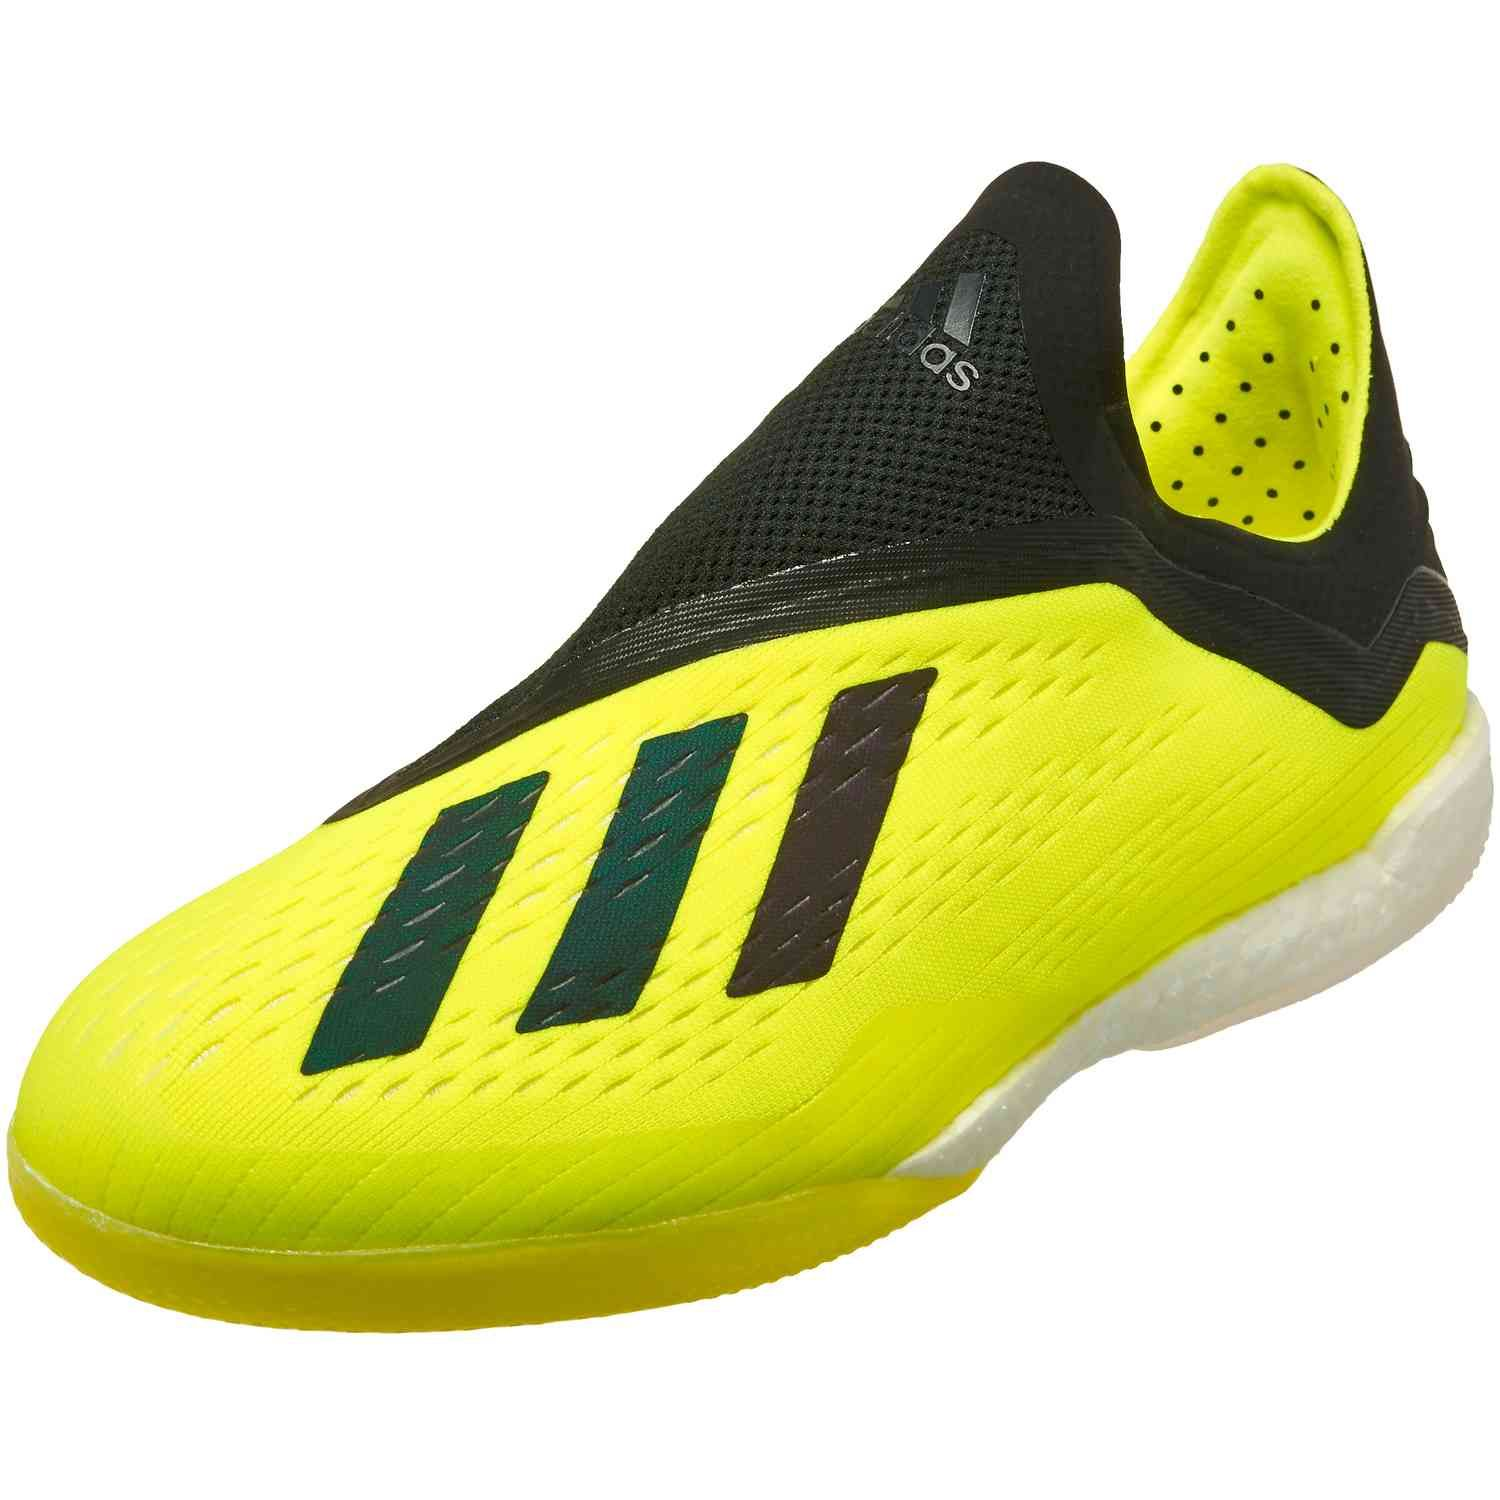 promo code 148b9 bcfac Team Mode pack adidas X Tango 18 indoor soccer shoes. Get them from  www.soccerpro.com